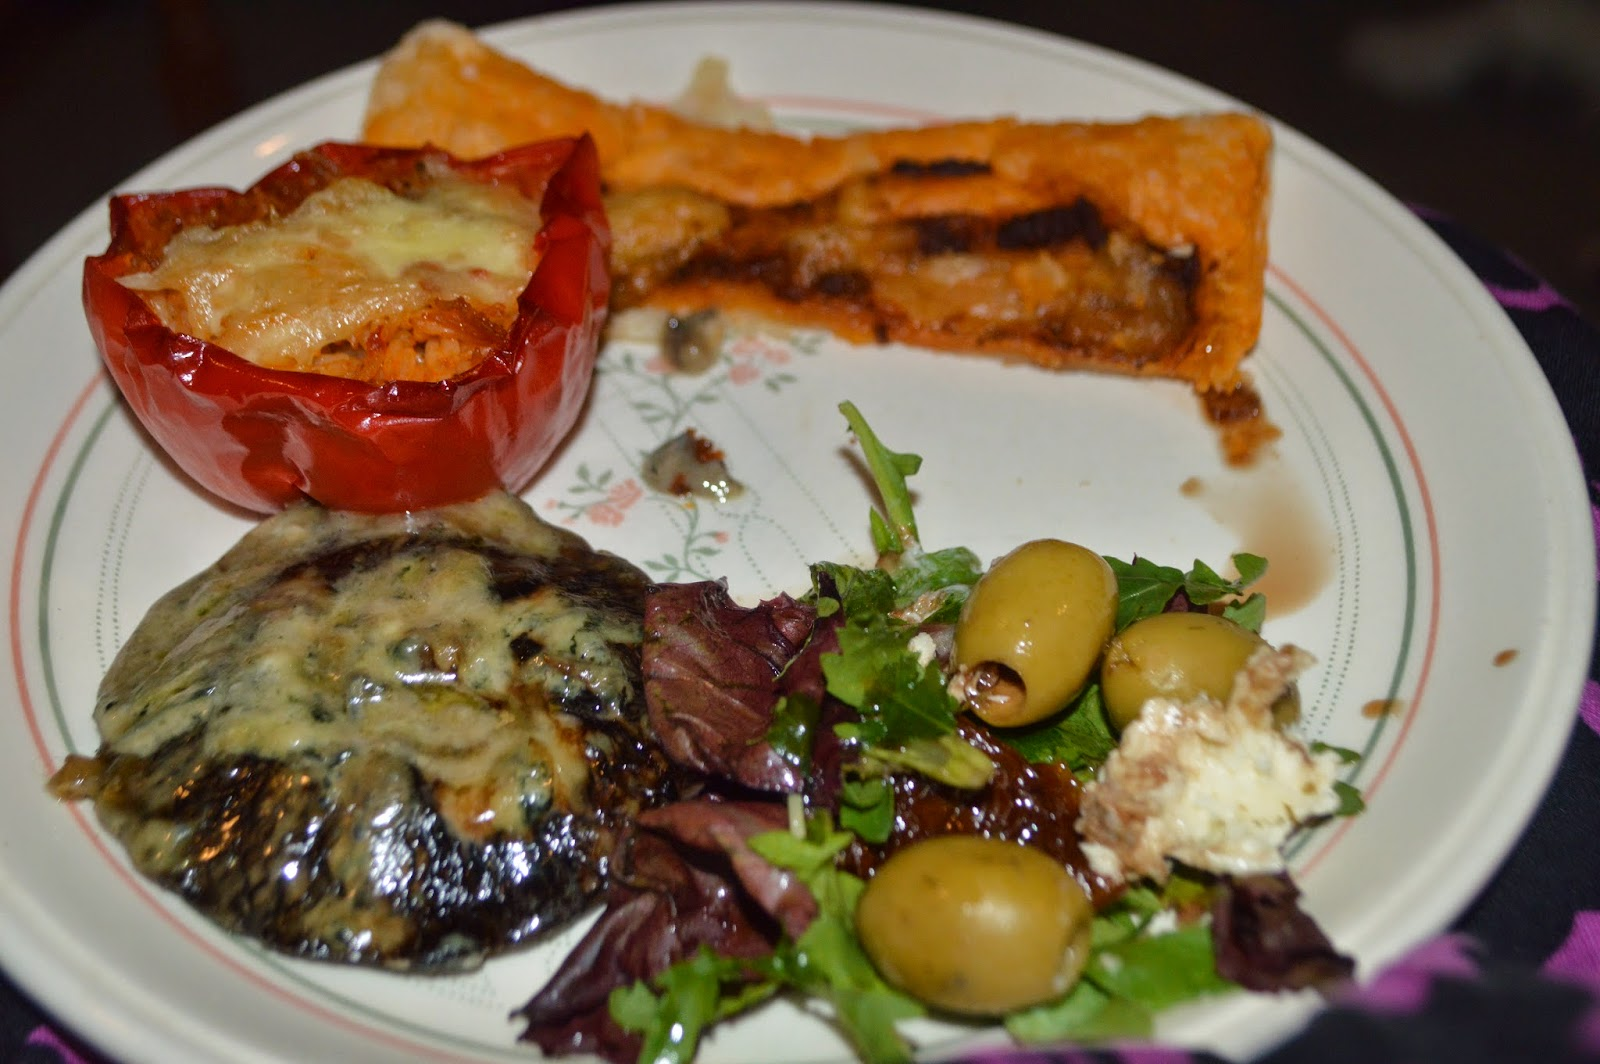 Dirty Dancing Style Cinema Night Stuffed Peppers Grilled Mushroom Pesto Tart Olives